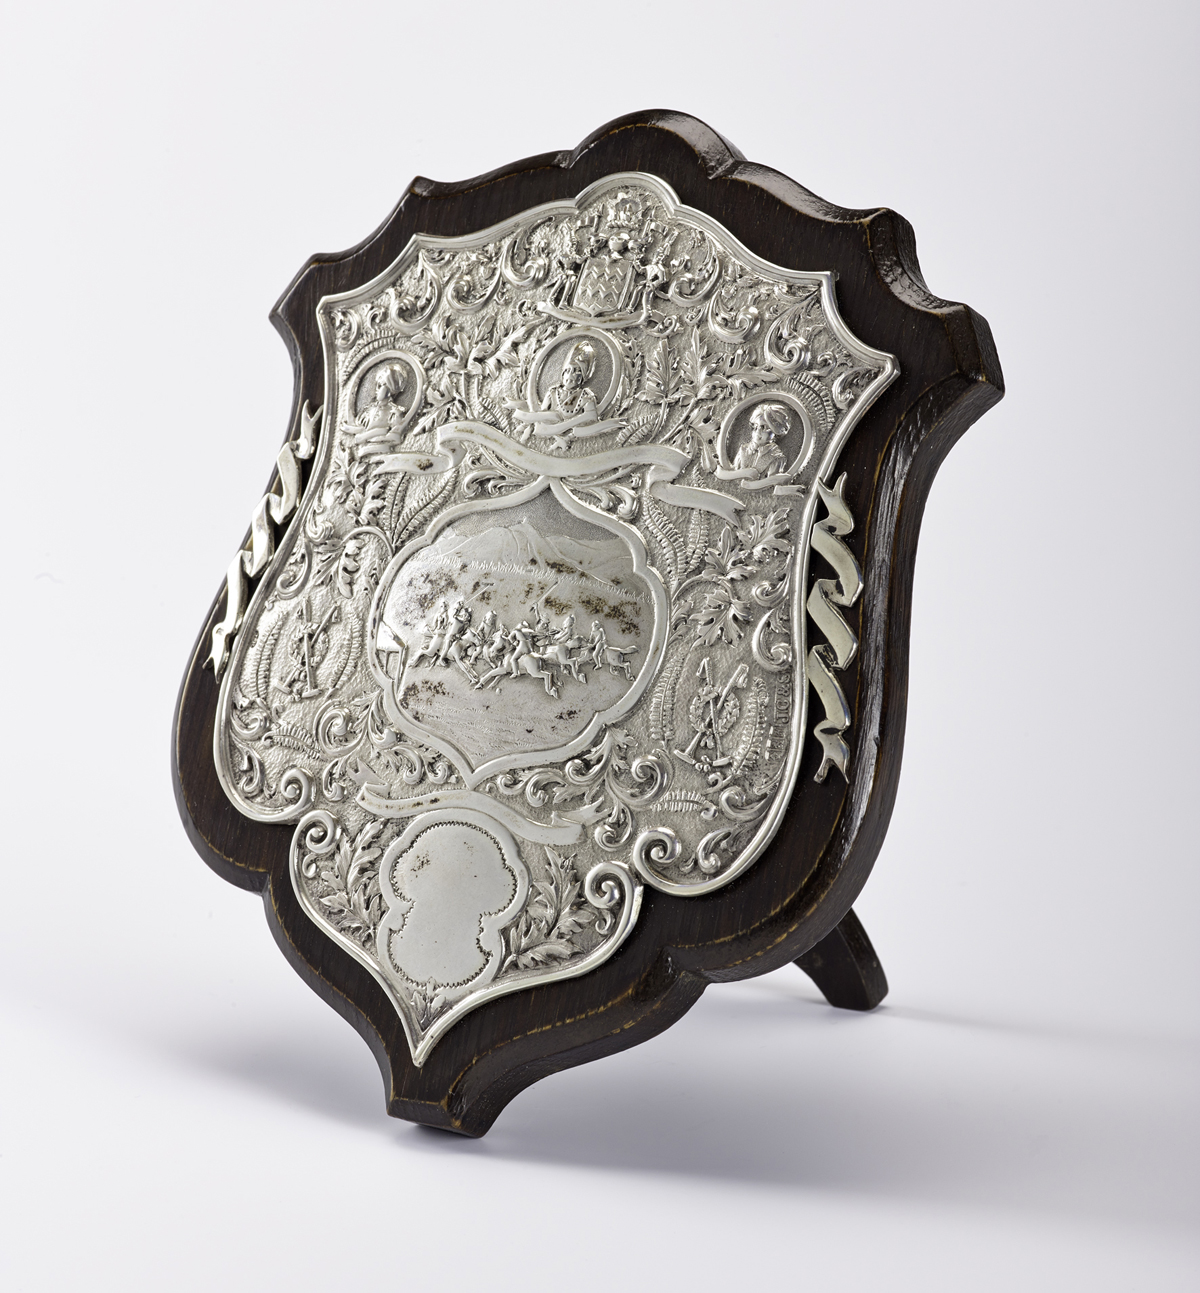 T.1998.80 - Silver polo trophy or badge with marks of Cameron of Kilmarnock and J. Ramsay of Dundee, hallmarked Glasgow, 1904 - 1905, mounted on wood.